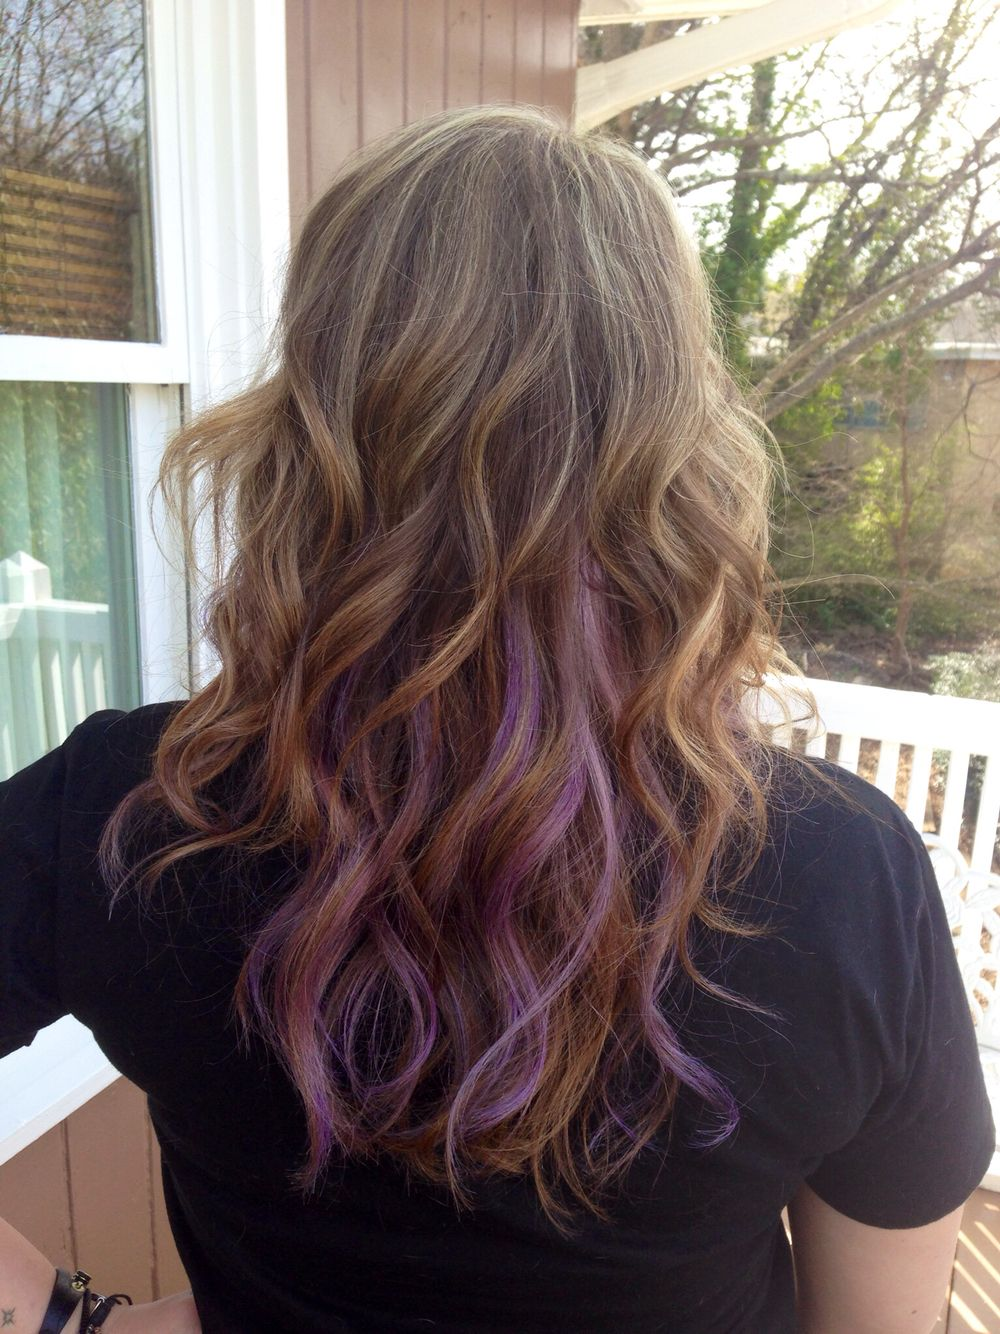 Pastel Purple Highlights On Dark Blonde Curly Hair Blonde Hair